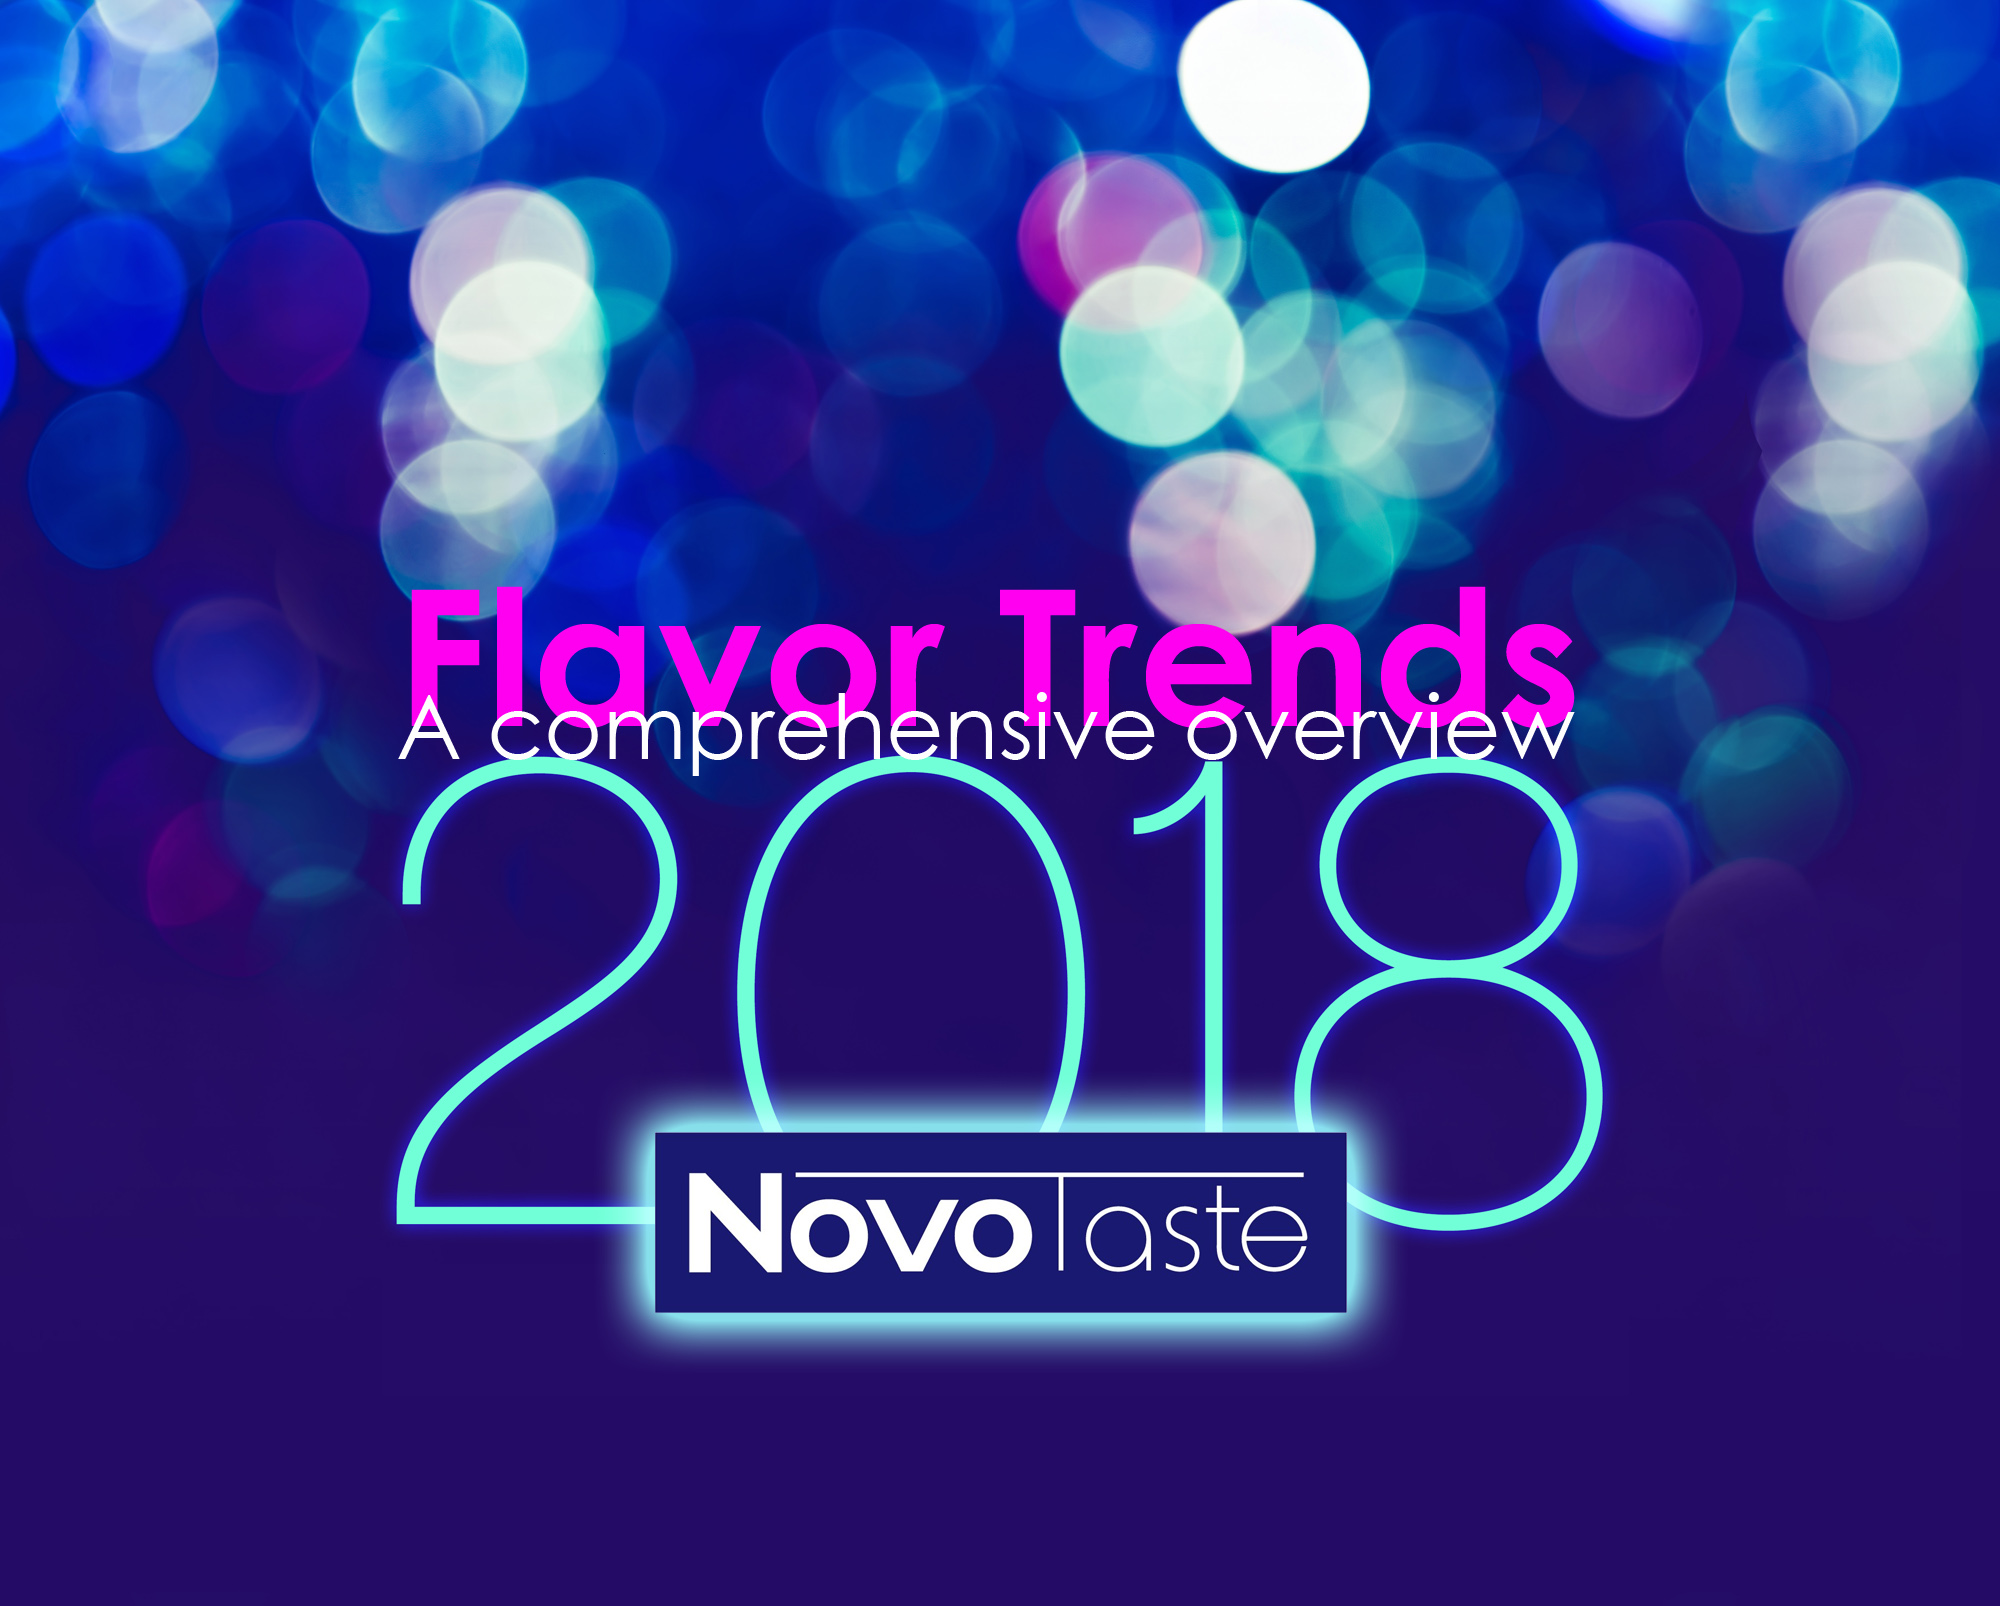 2018 Flavor Trends: A Comprehensive Overview